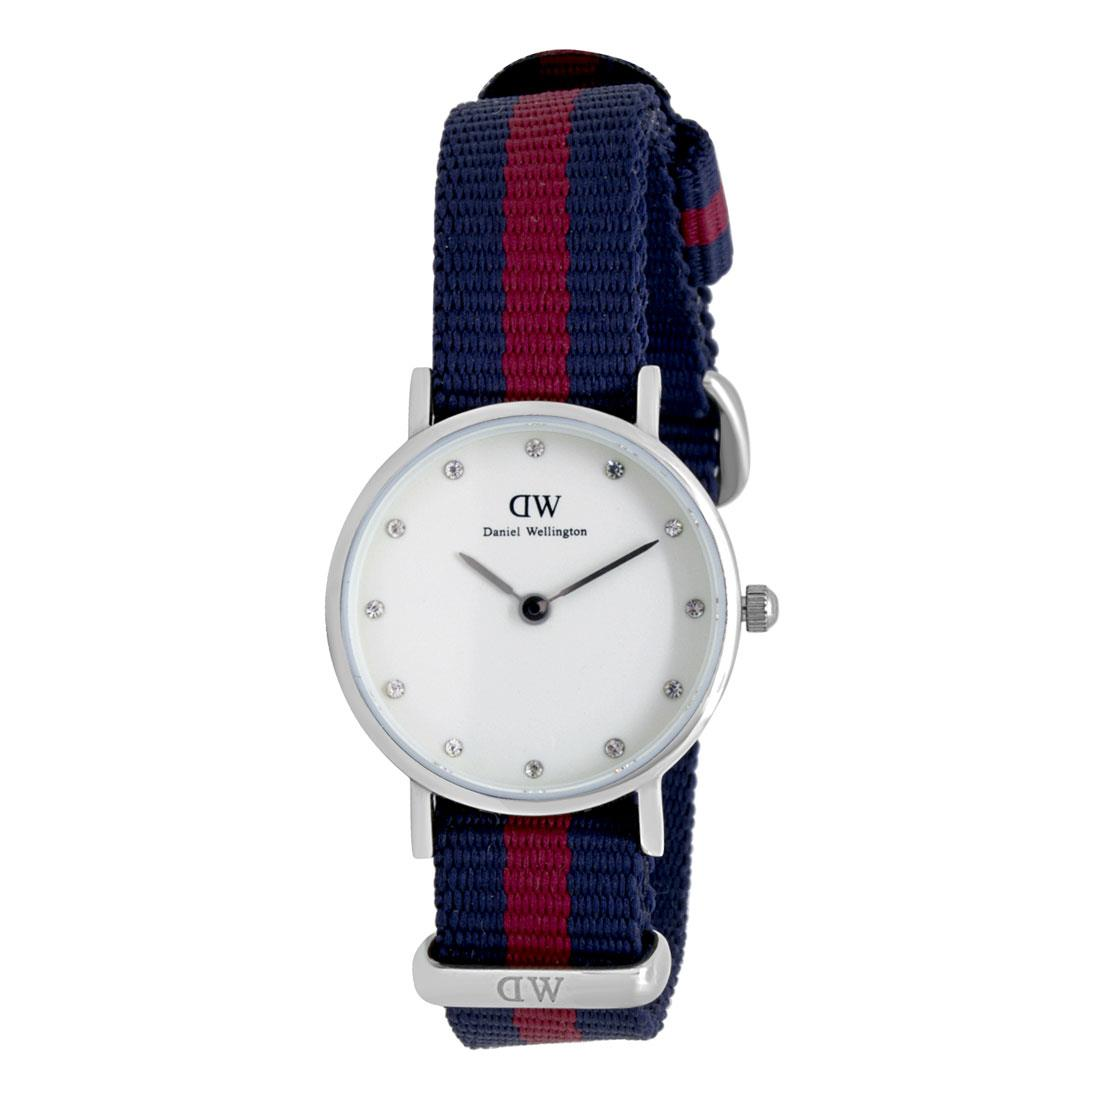 64ef5bb2b9 Luxury Zone - Daniel Wellington - Orologio cassa 26mm in acciaio